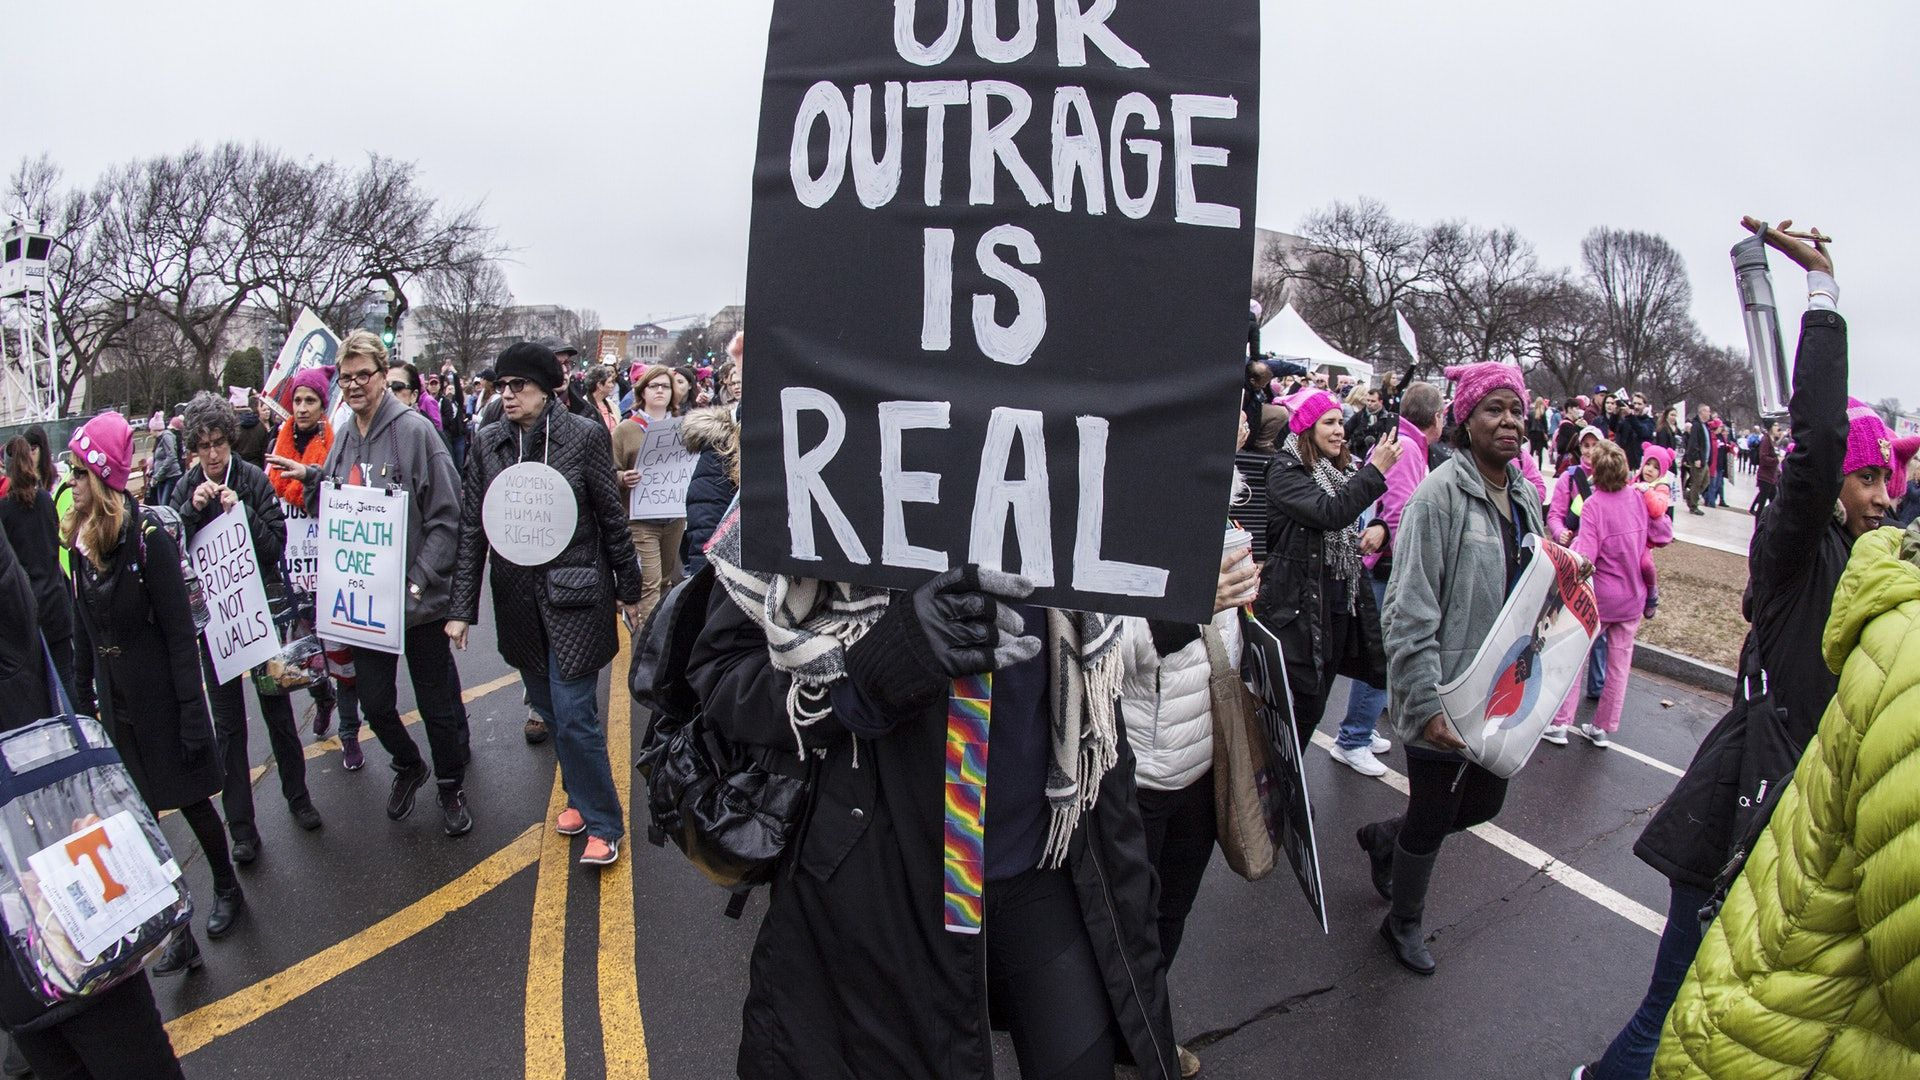 14 Women S March Sign Ideas To Shout Your Message From The Streets Womens March Womens March Signs Womens March Posters